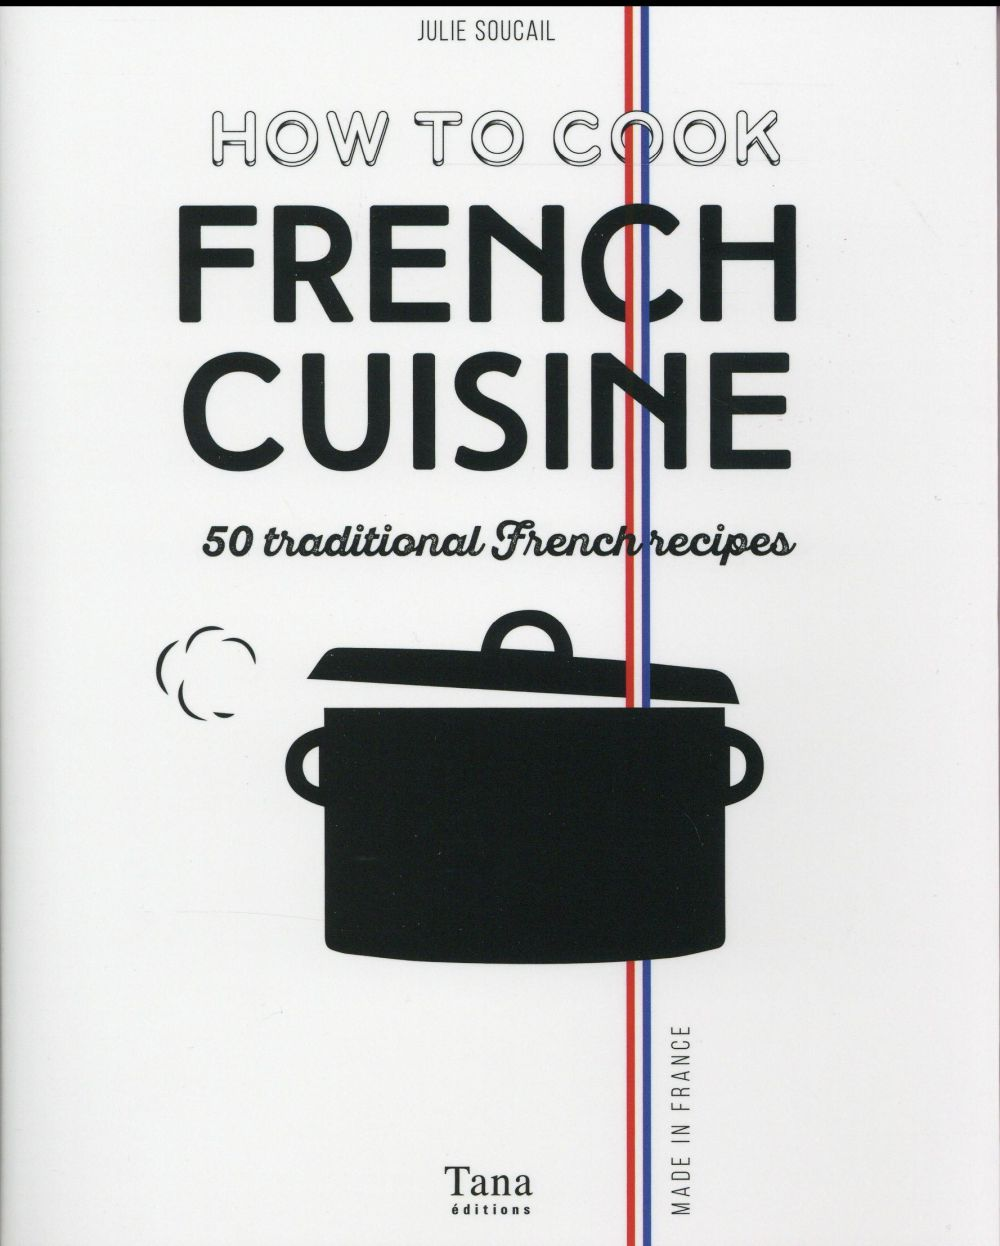 How to cook french cuisine ; 50 traditional frenchrecipes